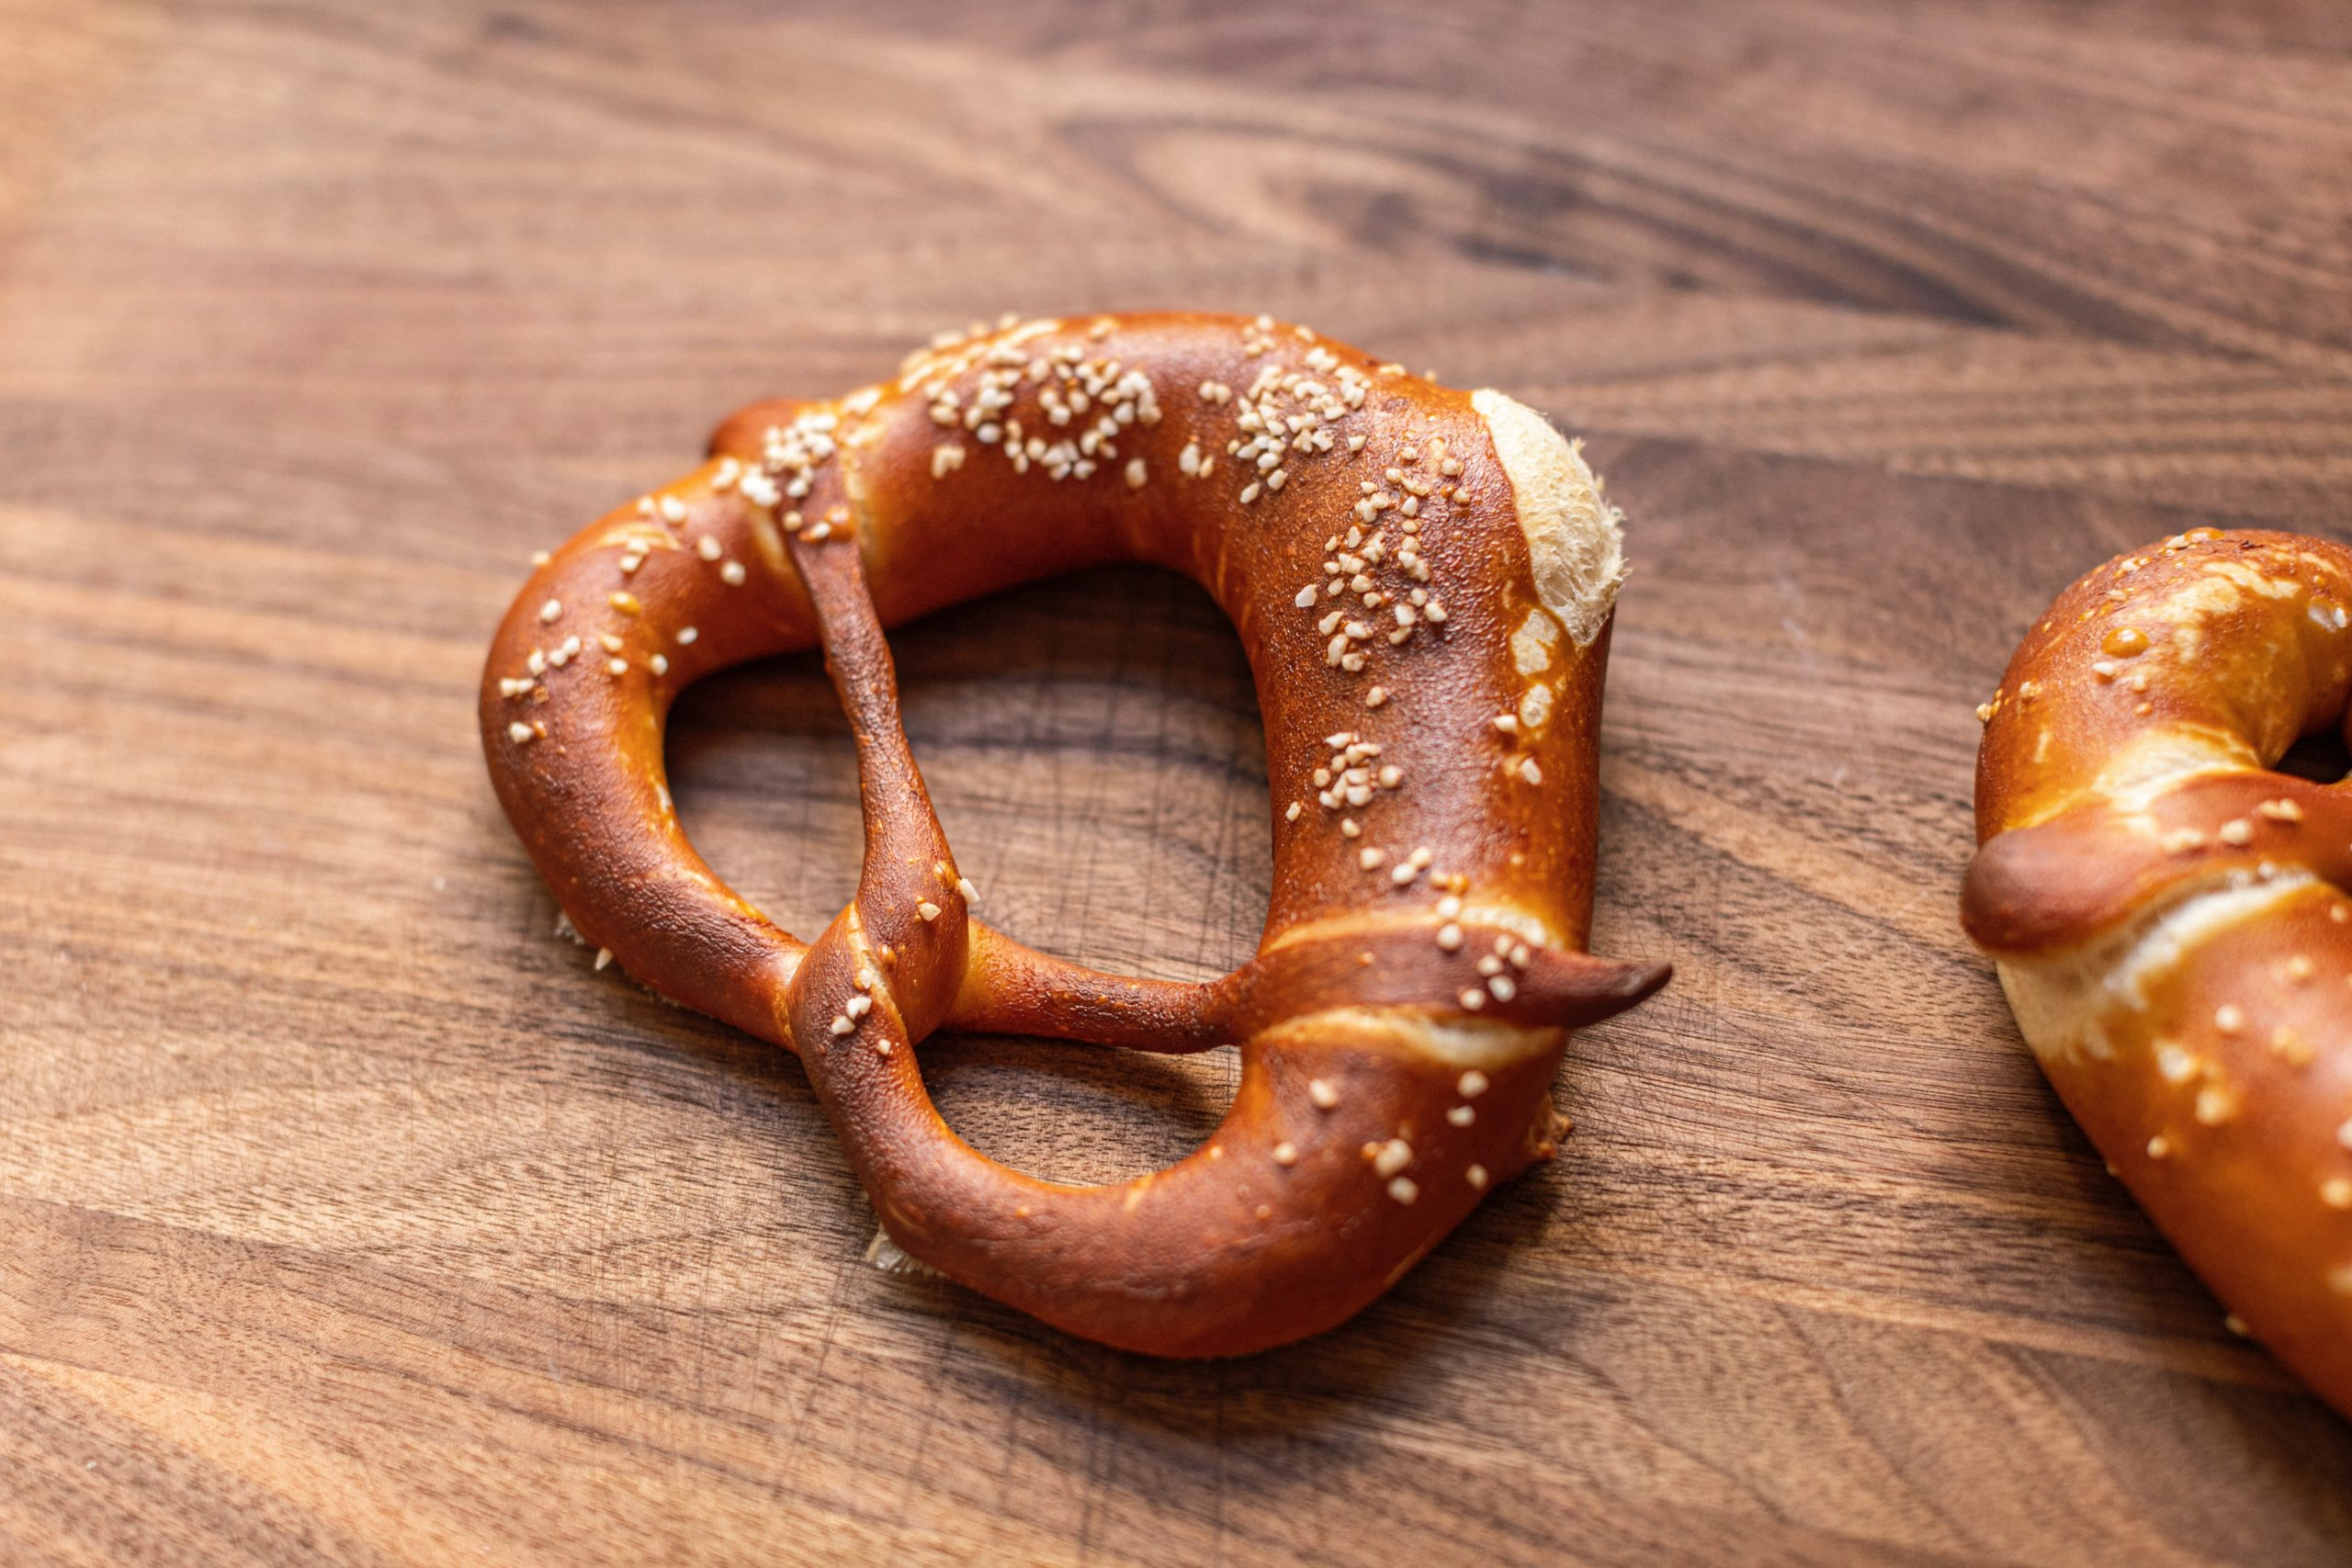 A soft pretzel on a table.